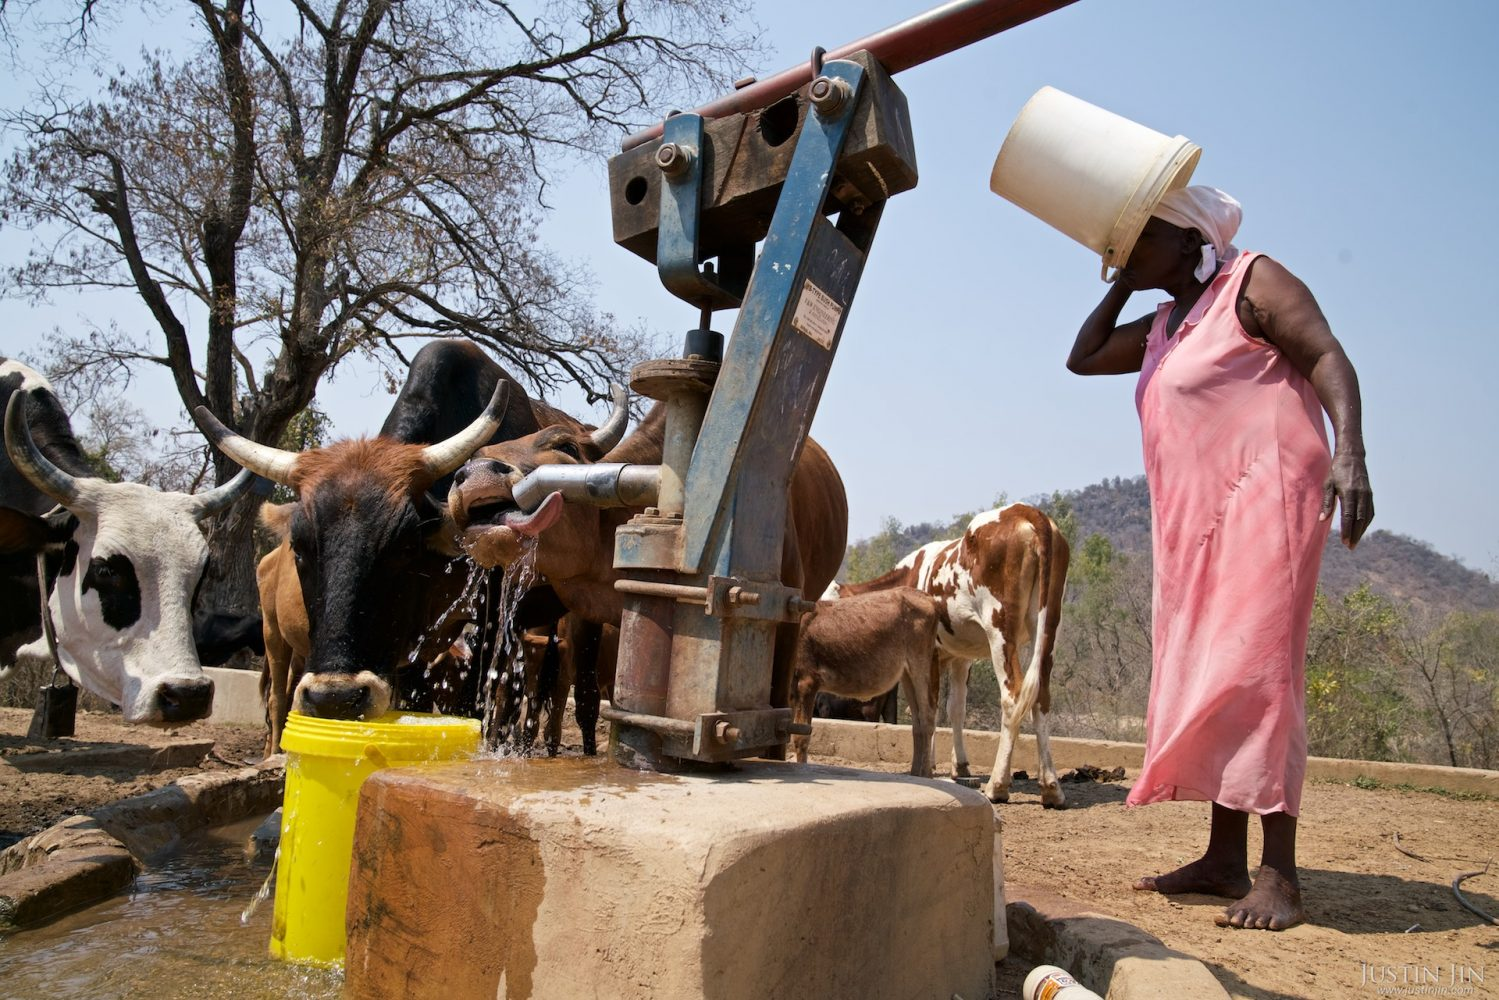 A woman and her cattle drink by a borehole in drought-hit Masking Province, Zimbabwe. Drought in southern Africa is devastating communities in Zimbabwe, leaving 4 million people urgently in need of food aid. The government declared a state of emergency,. Here in Masvingo Province, the country's hardest hit province, vegetation has wilted, livestock is dying, and people are at serious risk of famine. Pictures shot by Justin Jin